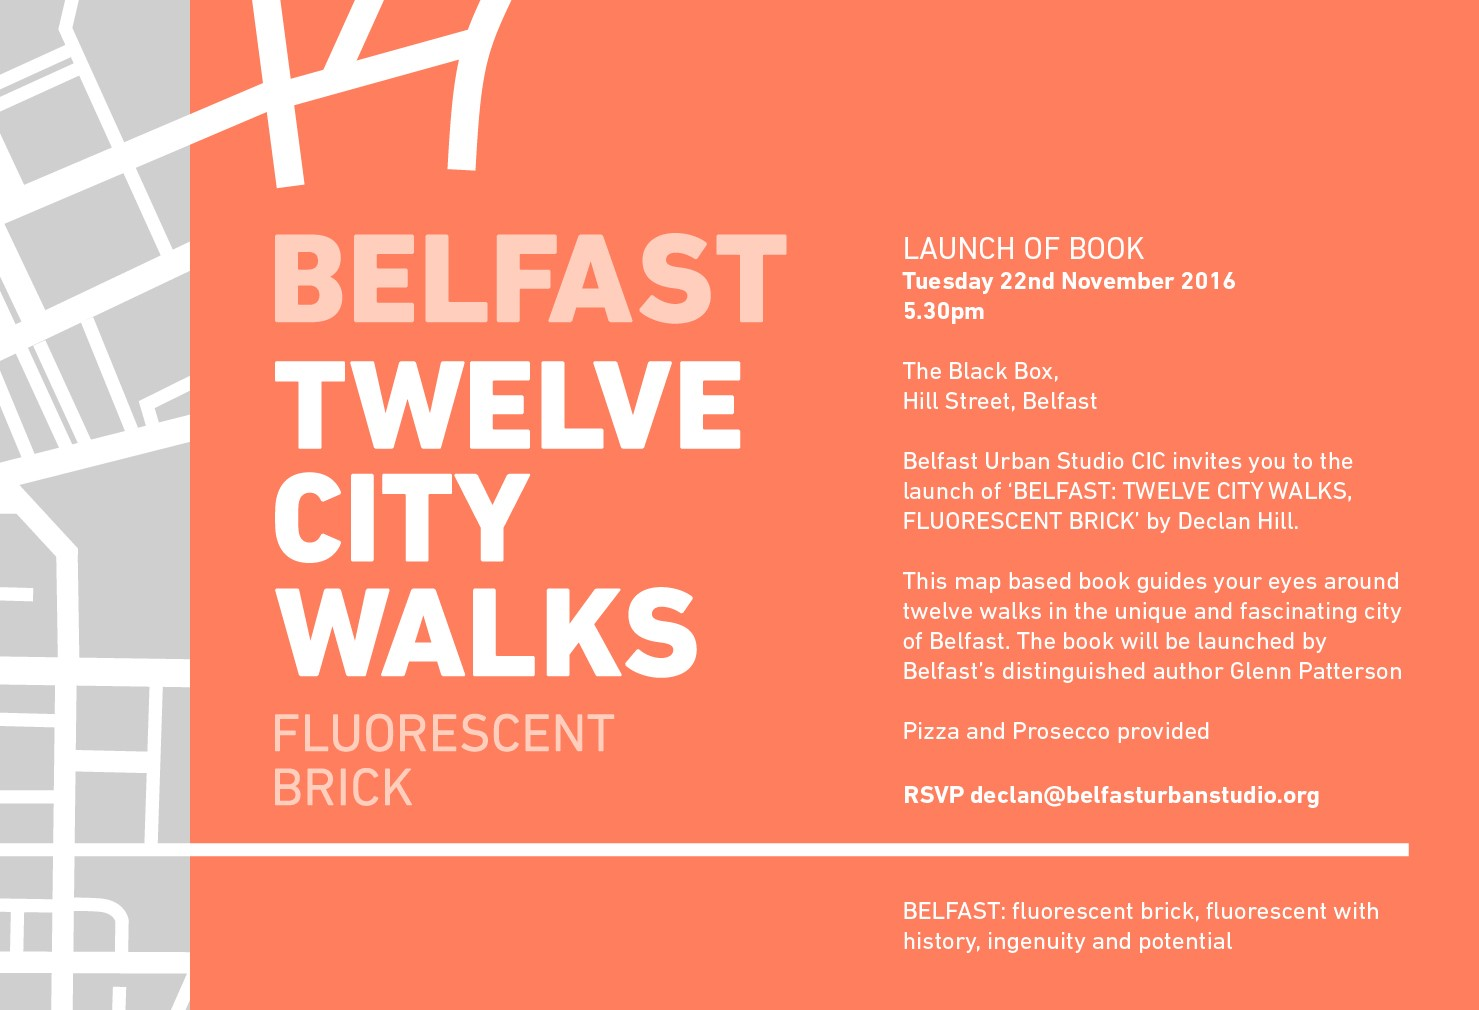 twelve-city-walks-launch